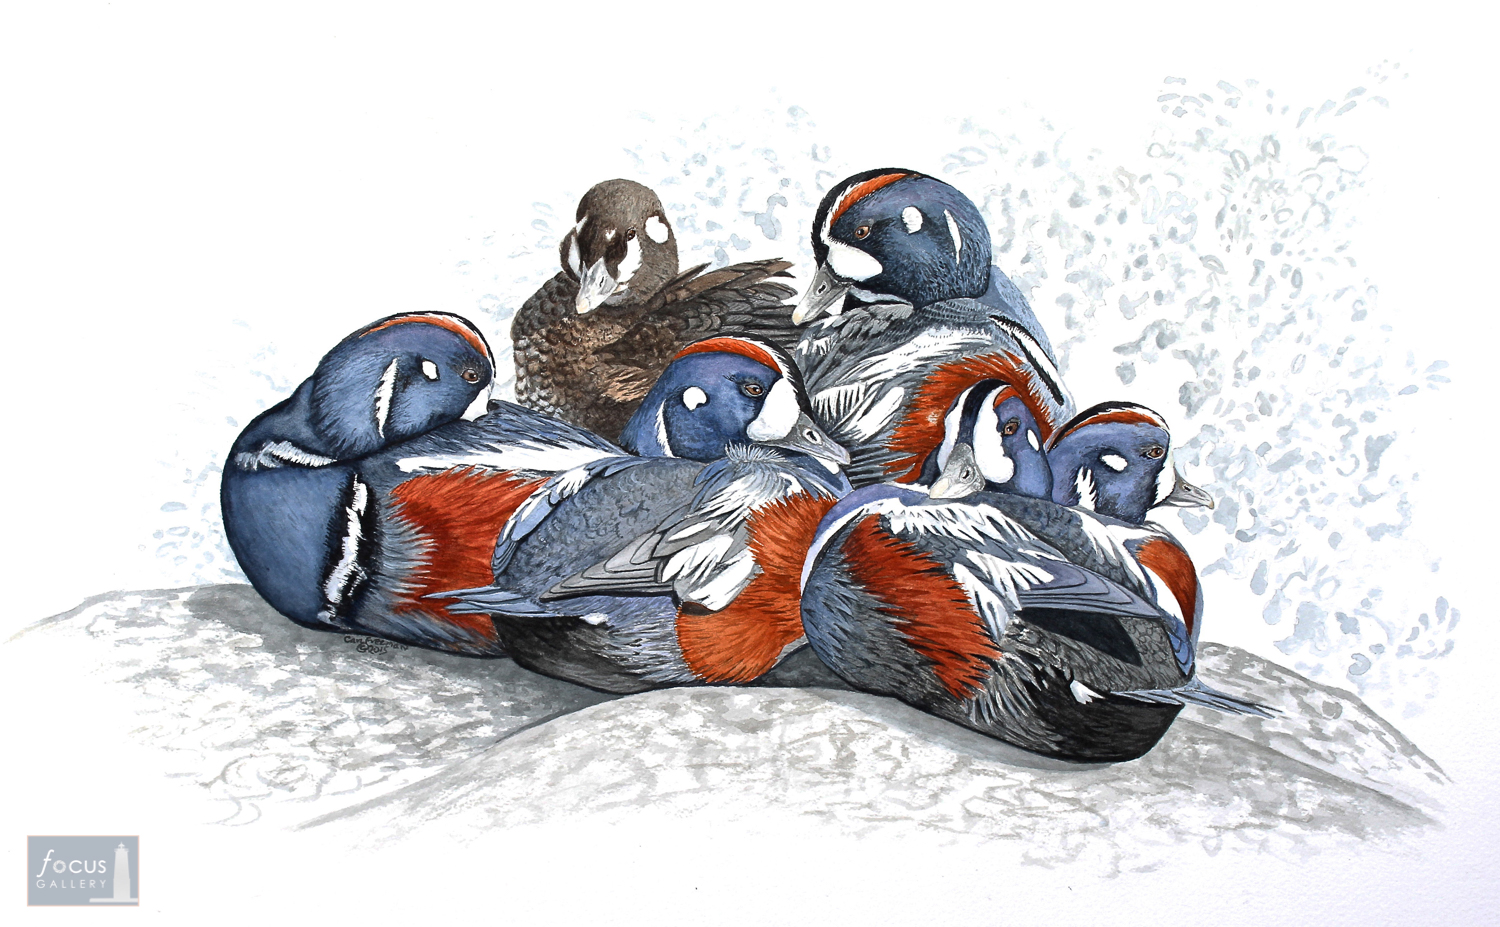 Original watercolor painting of a group of Harlequin Ducks sitting together.